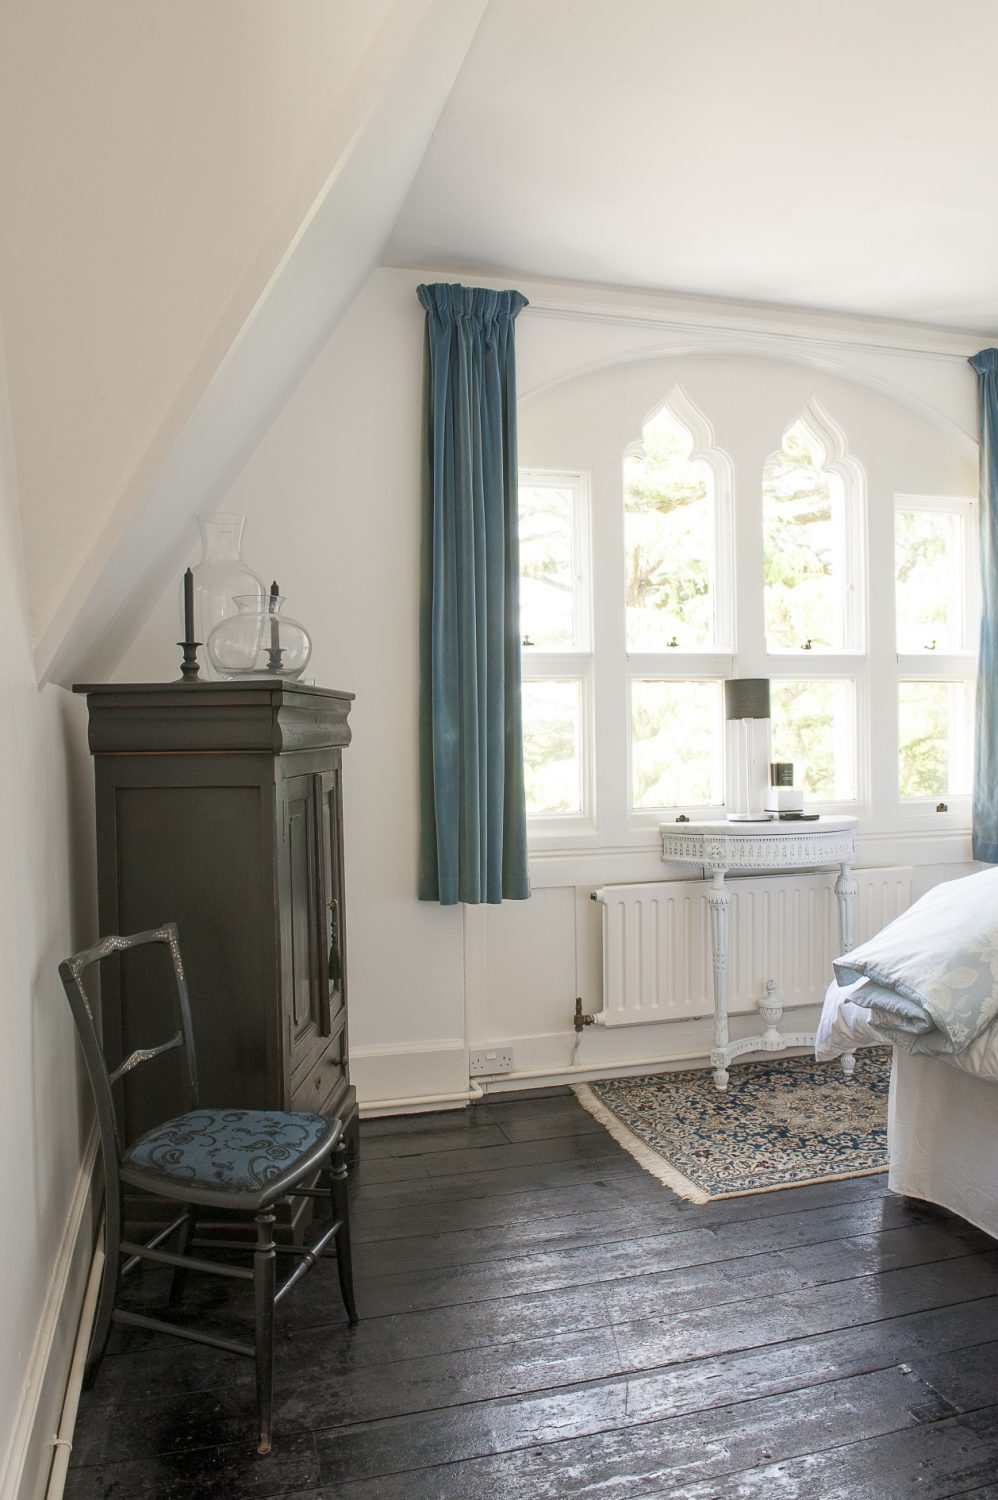 A guest room which is occasionally offered to B&B guests has been decorated in French Empire style